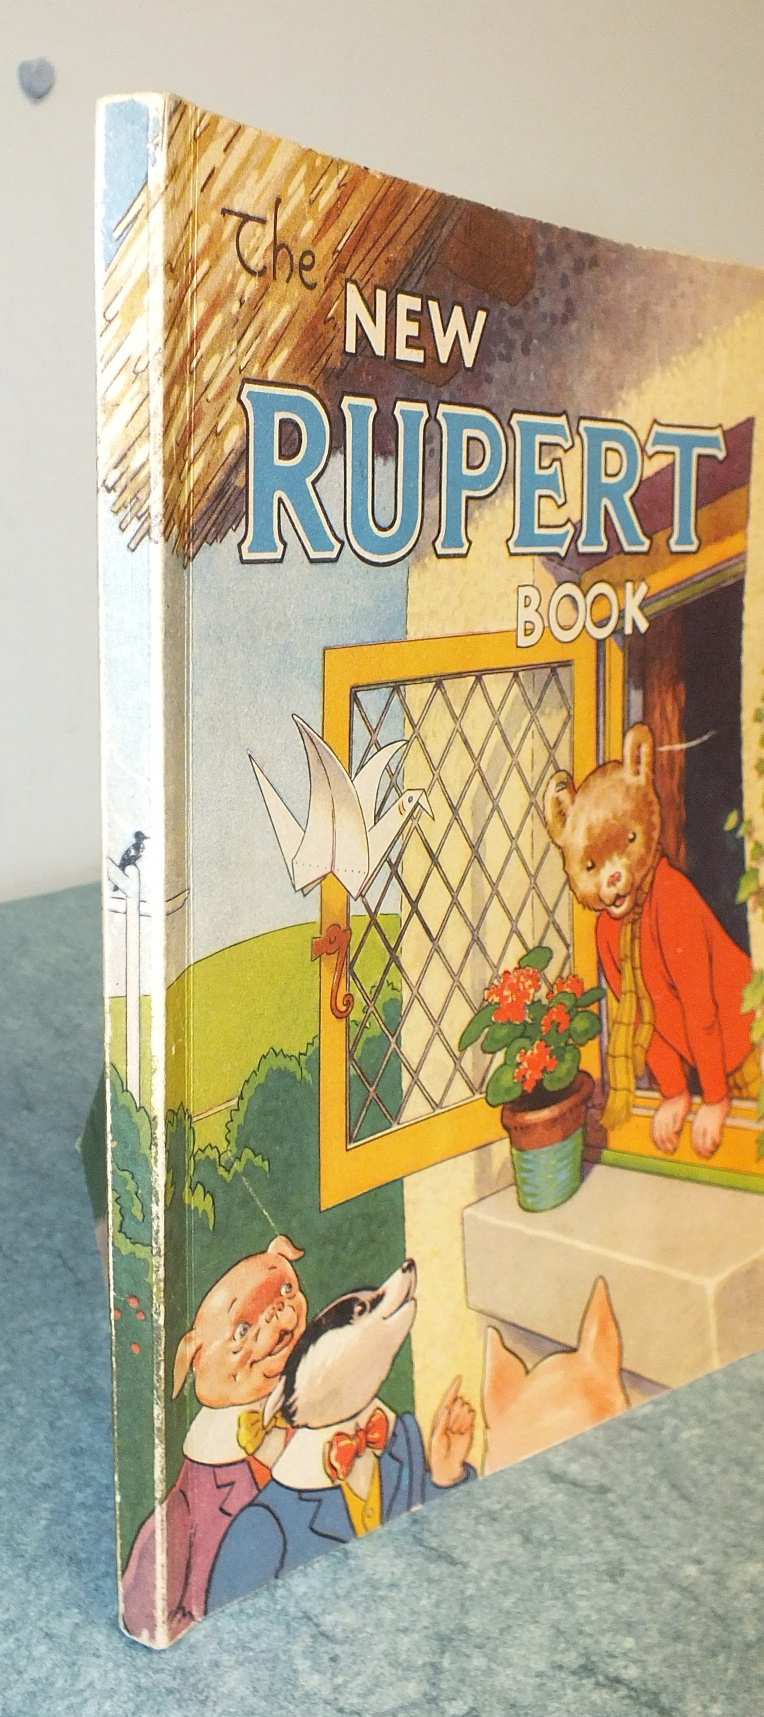 Lot 12 - The New Rupert Book, Daily Express Publication, 1946, ownership inscription, not price-clipped but